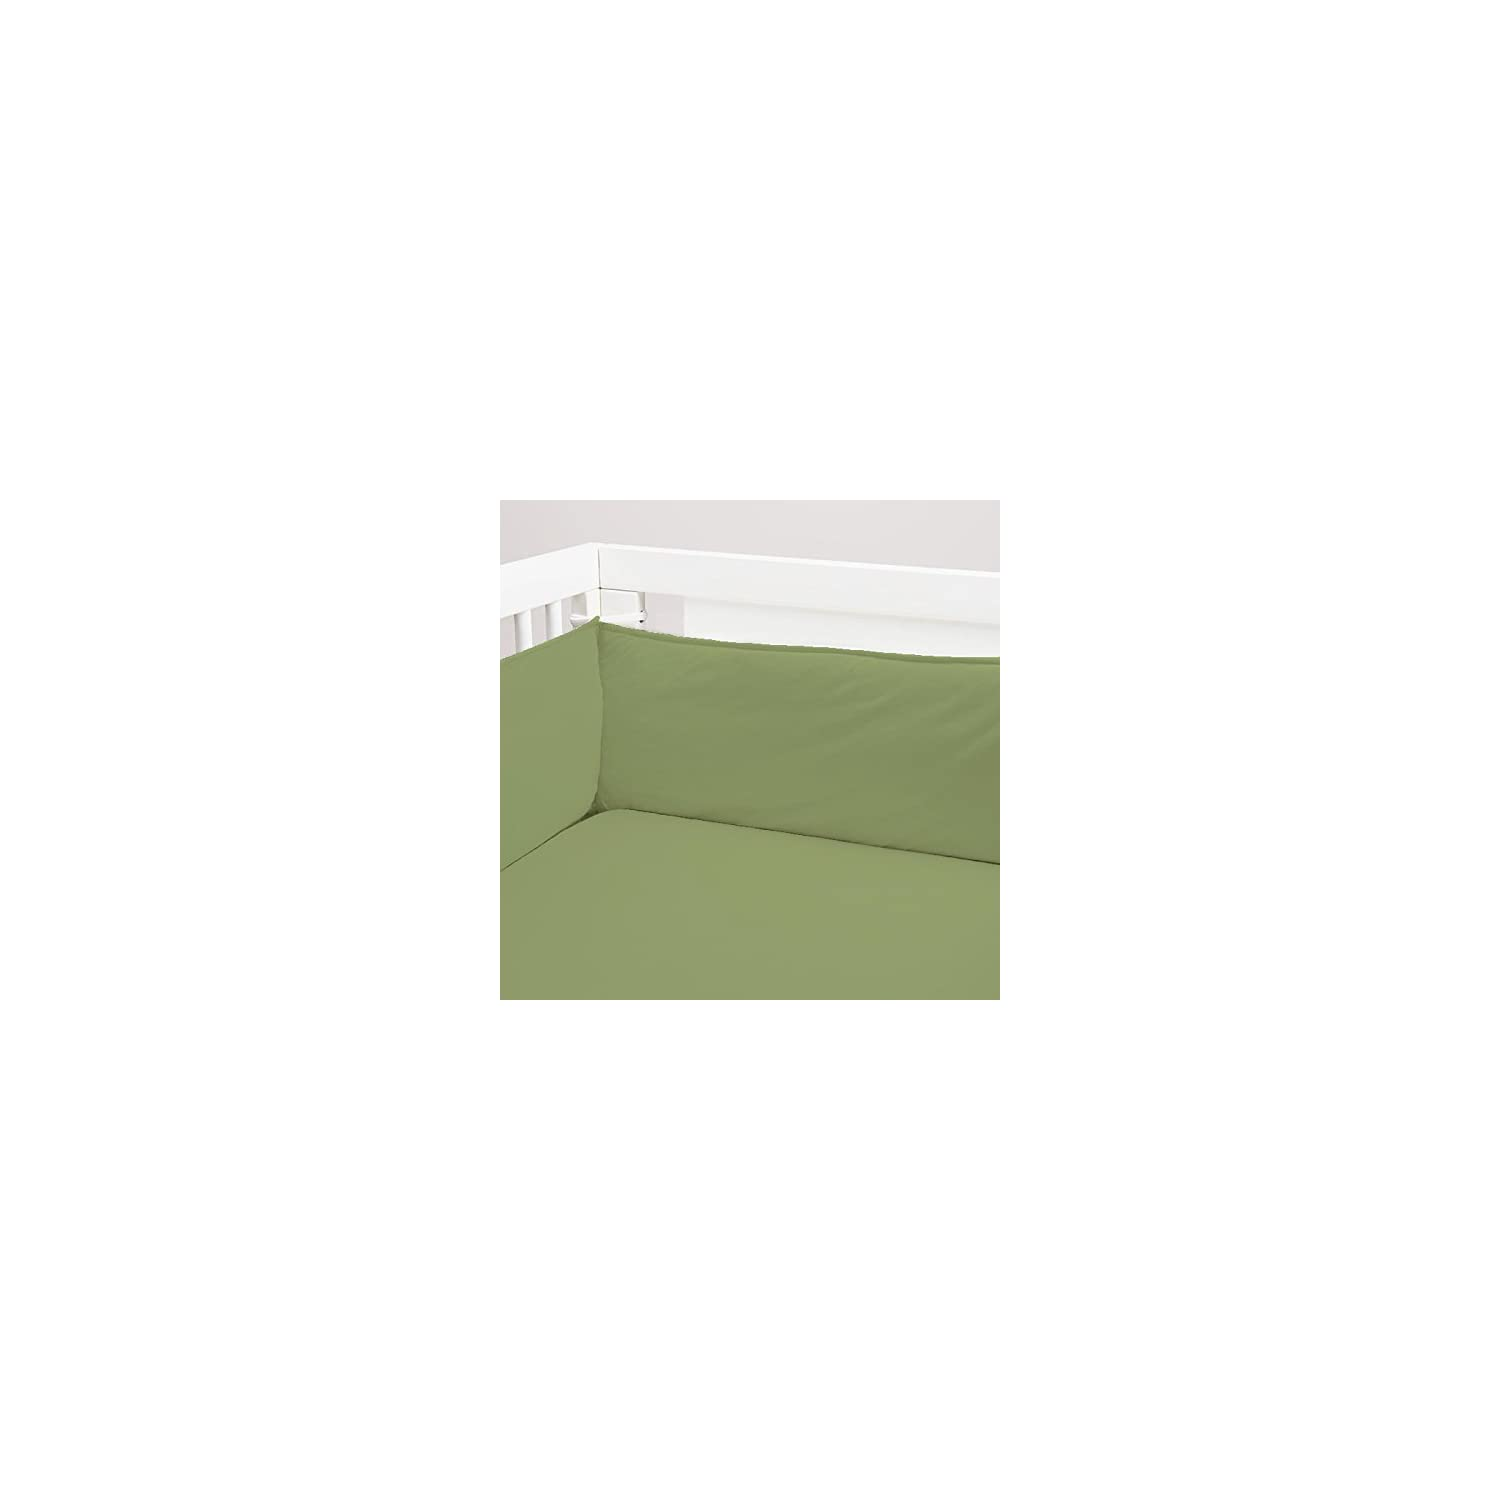 Crib Fitted Sheet Only – 200 Thread Count 100% Cotton – Soft & Comfy -Fit for Standard Crib Mattress and Toddler Bed (Sage)